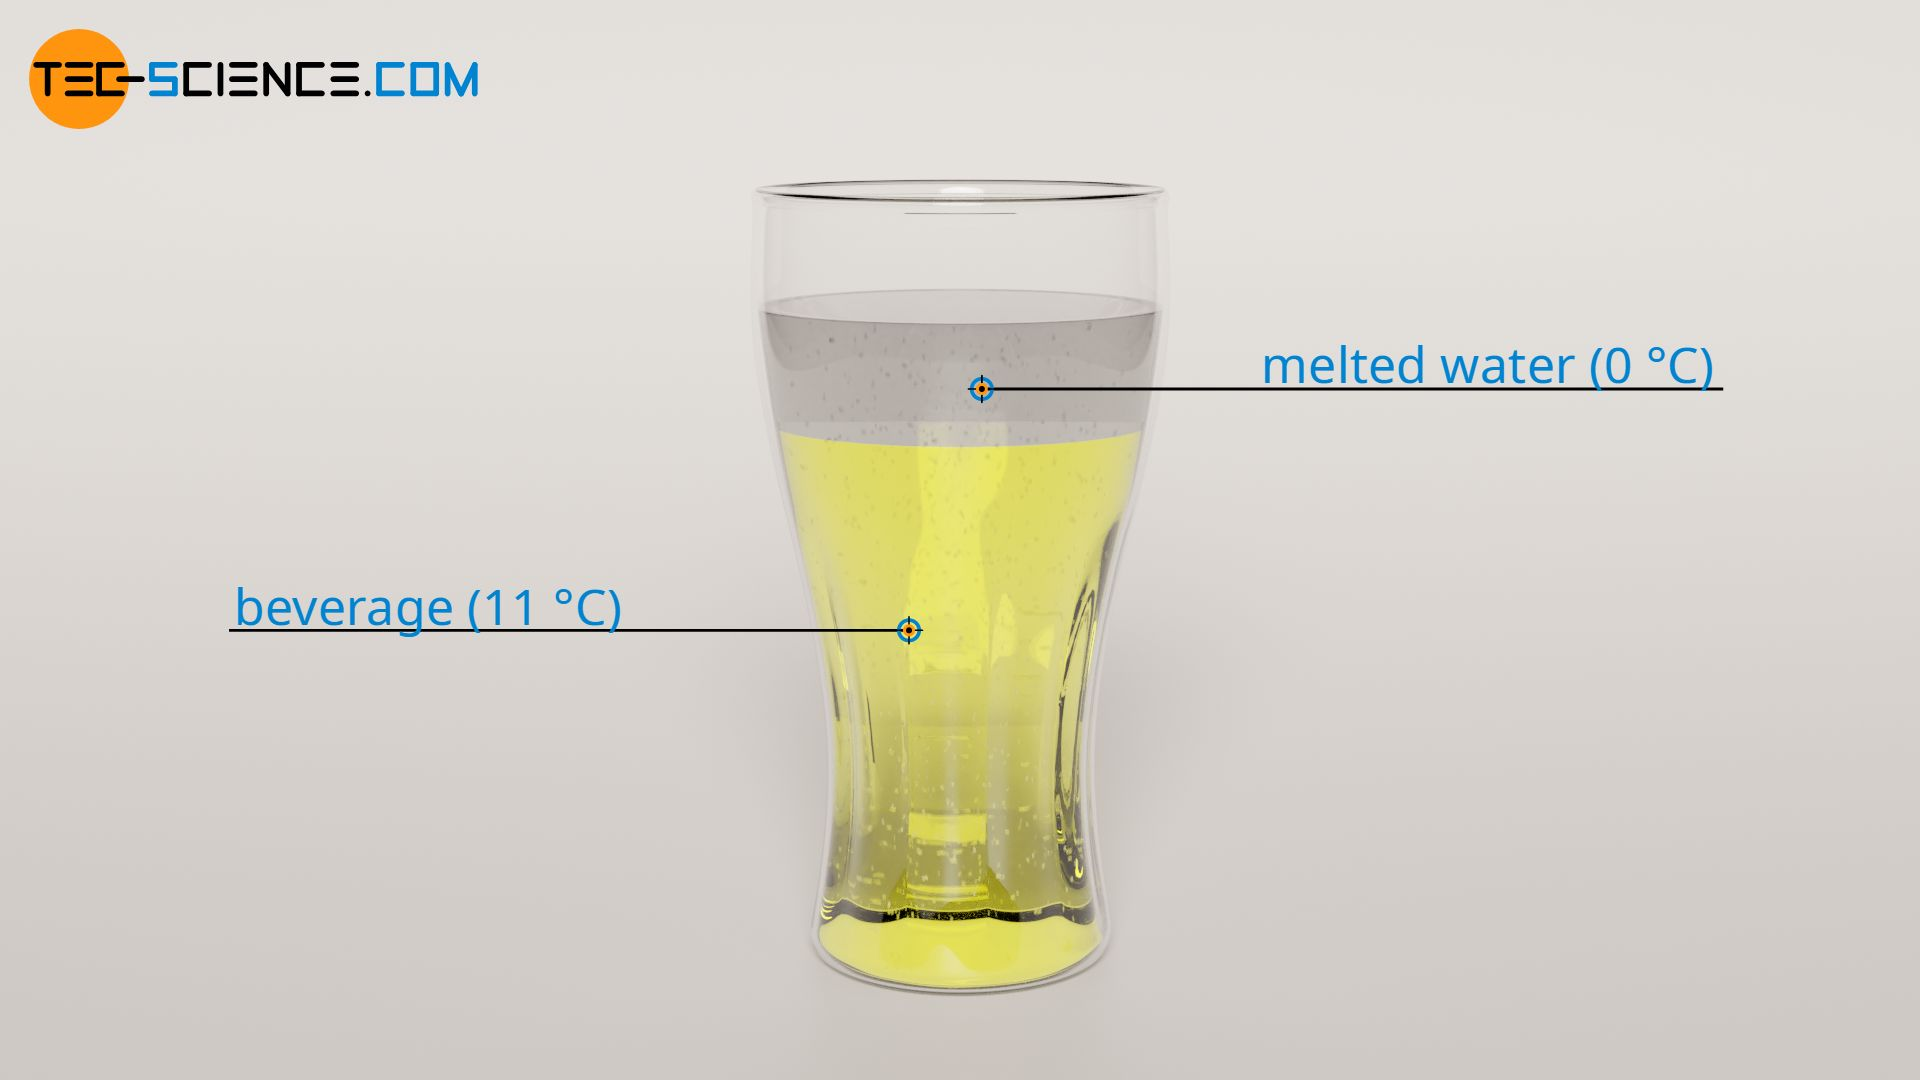 Mixing the melted water with the drink